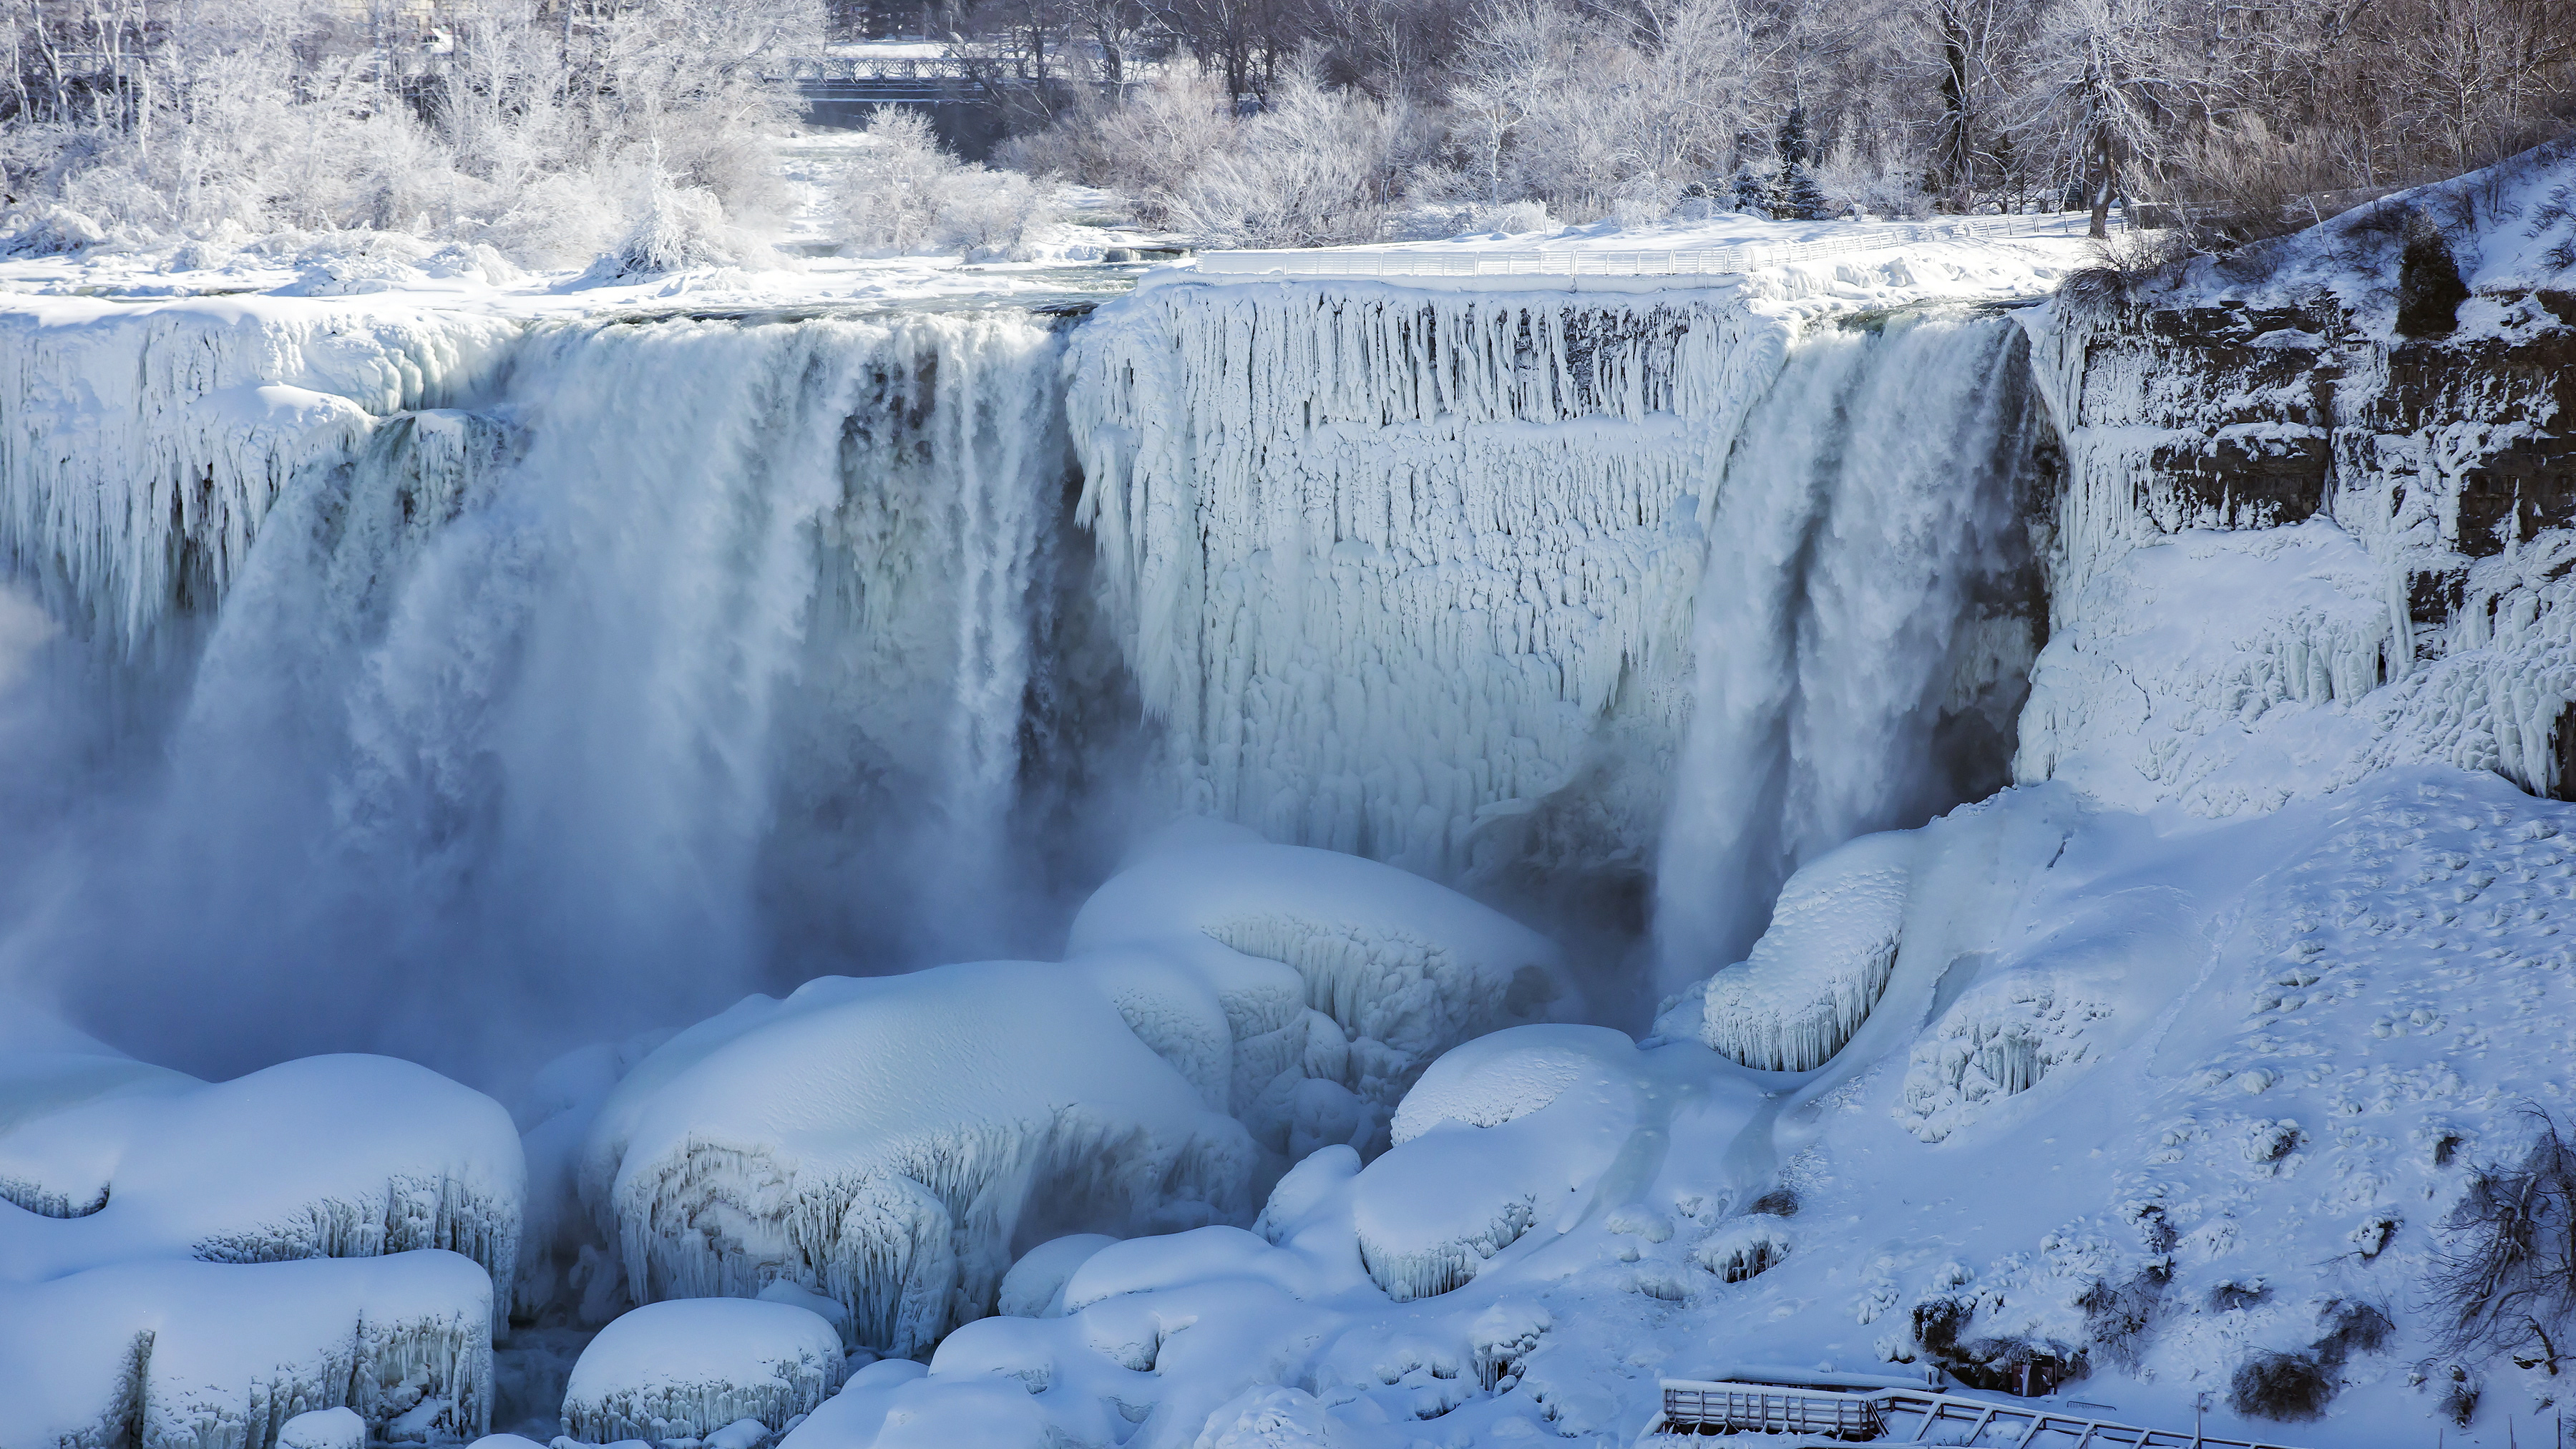 Here are 9 of the most magical frozen landscapes | CNN Travel